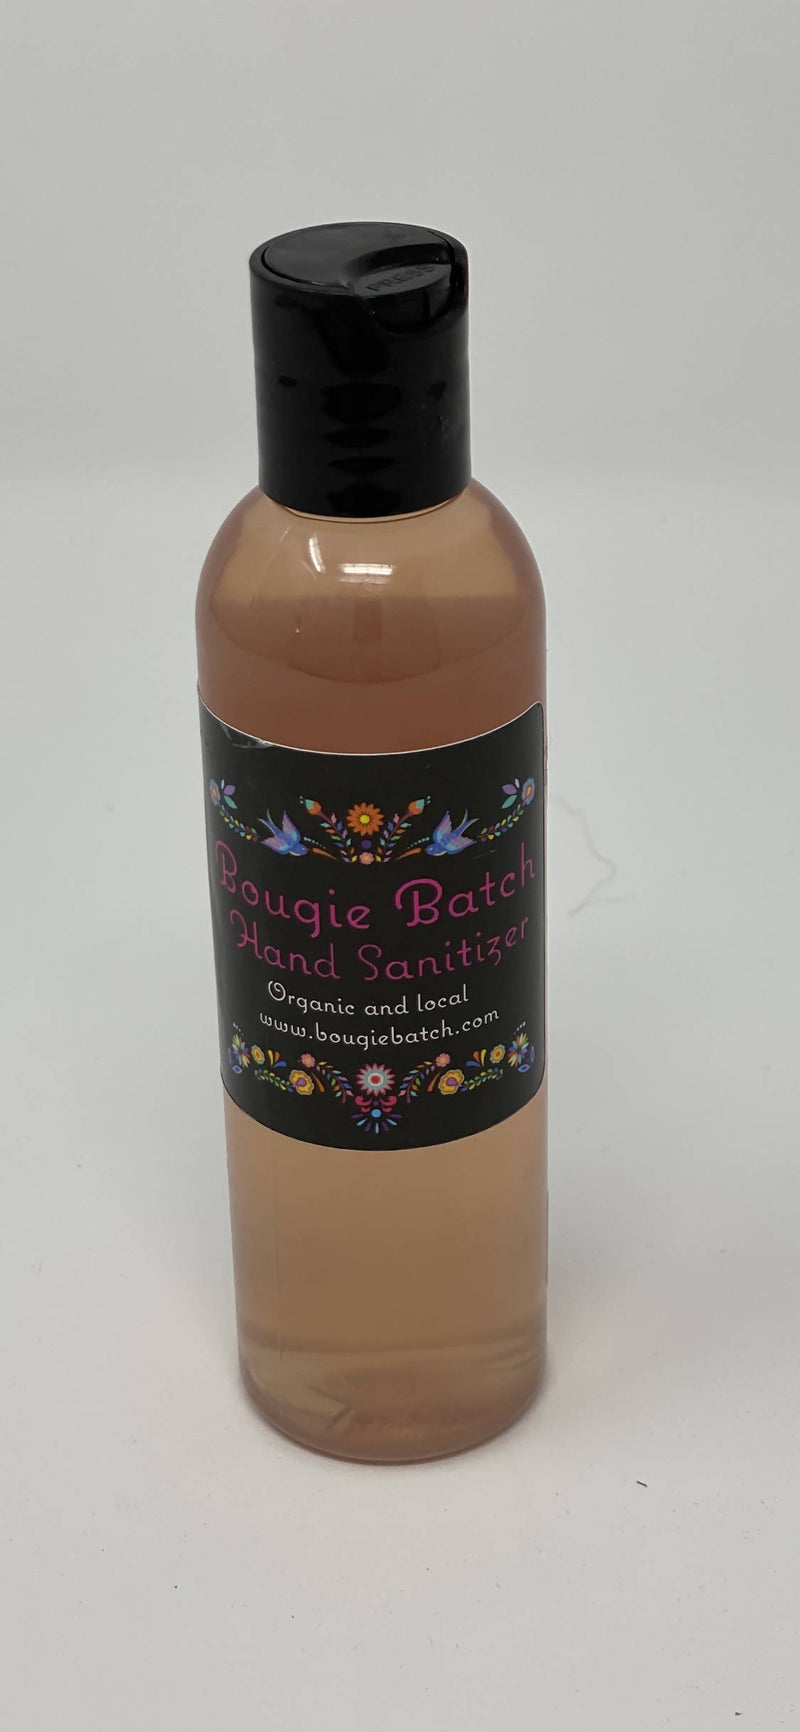 Bougie Batch Hand Sanitizer Eucalyptus/ Bergamot 4 oz Pop Top